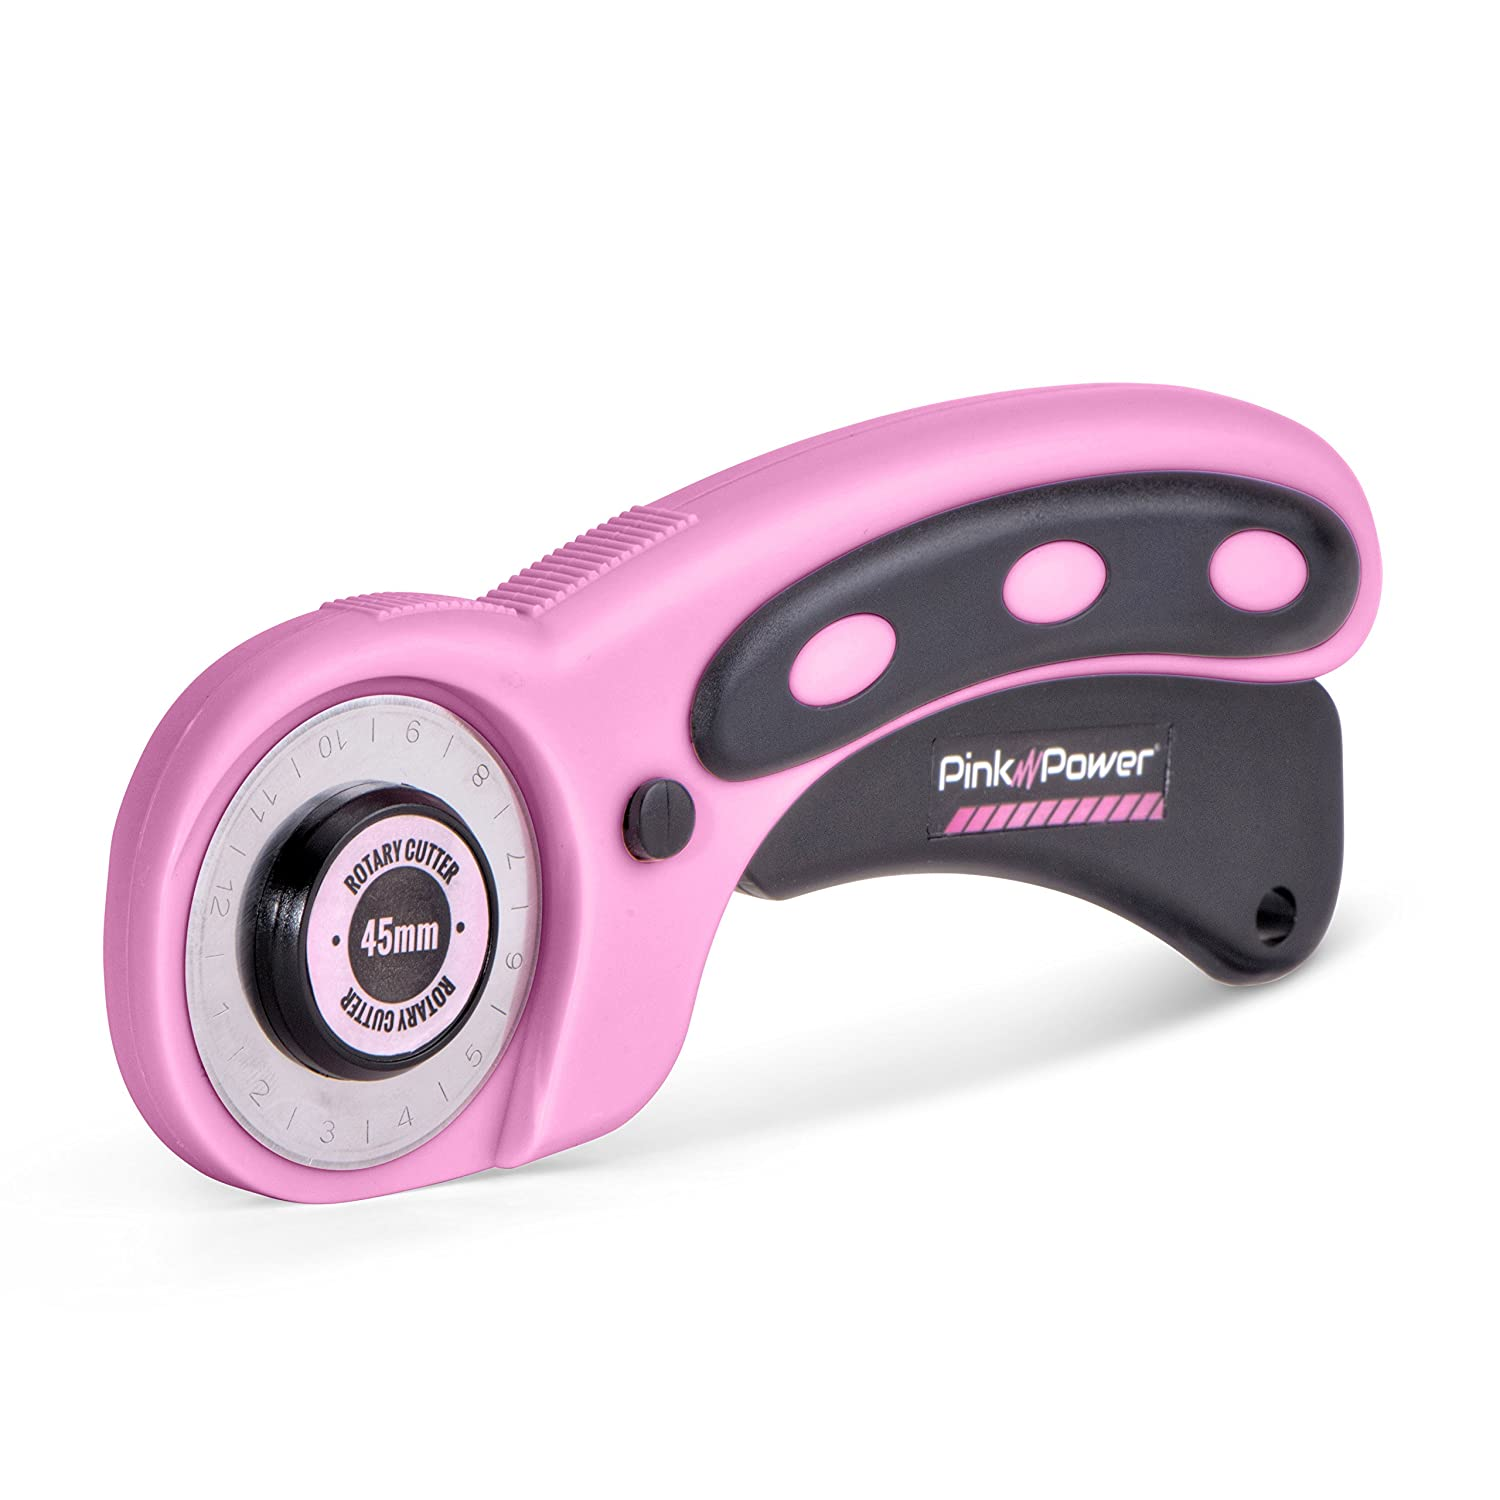 Pink Power 45mm Rotary Cutter for Fabric, Scrapbooking, Quilting and Sewing 4336850584